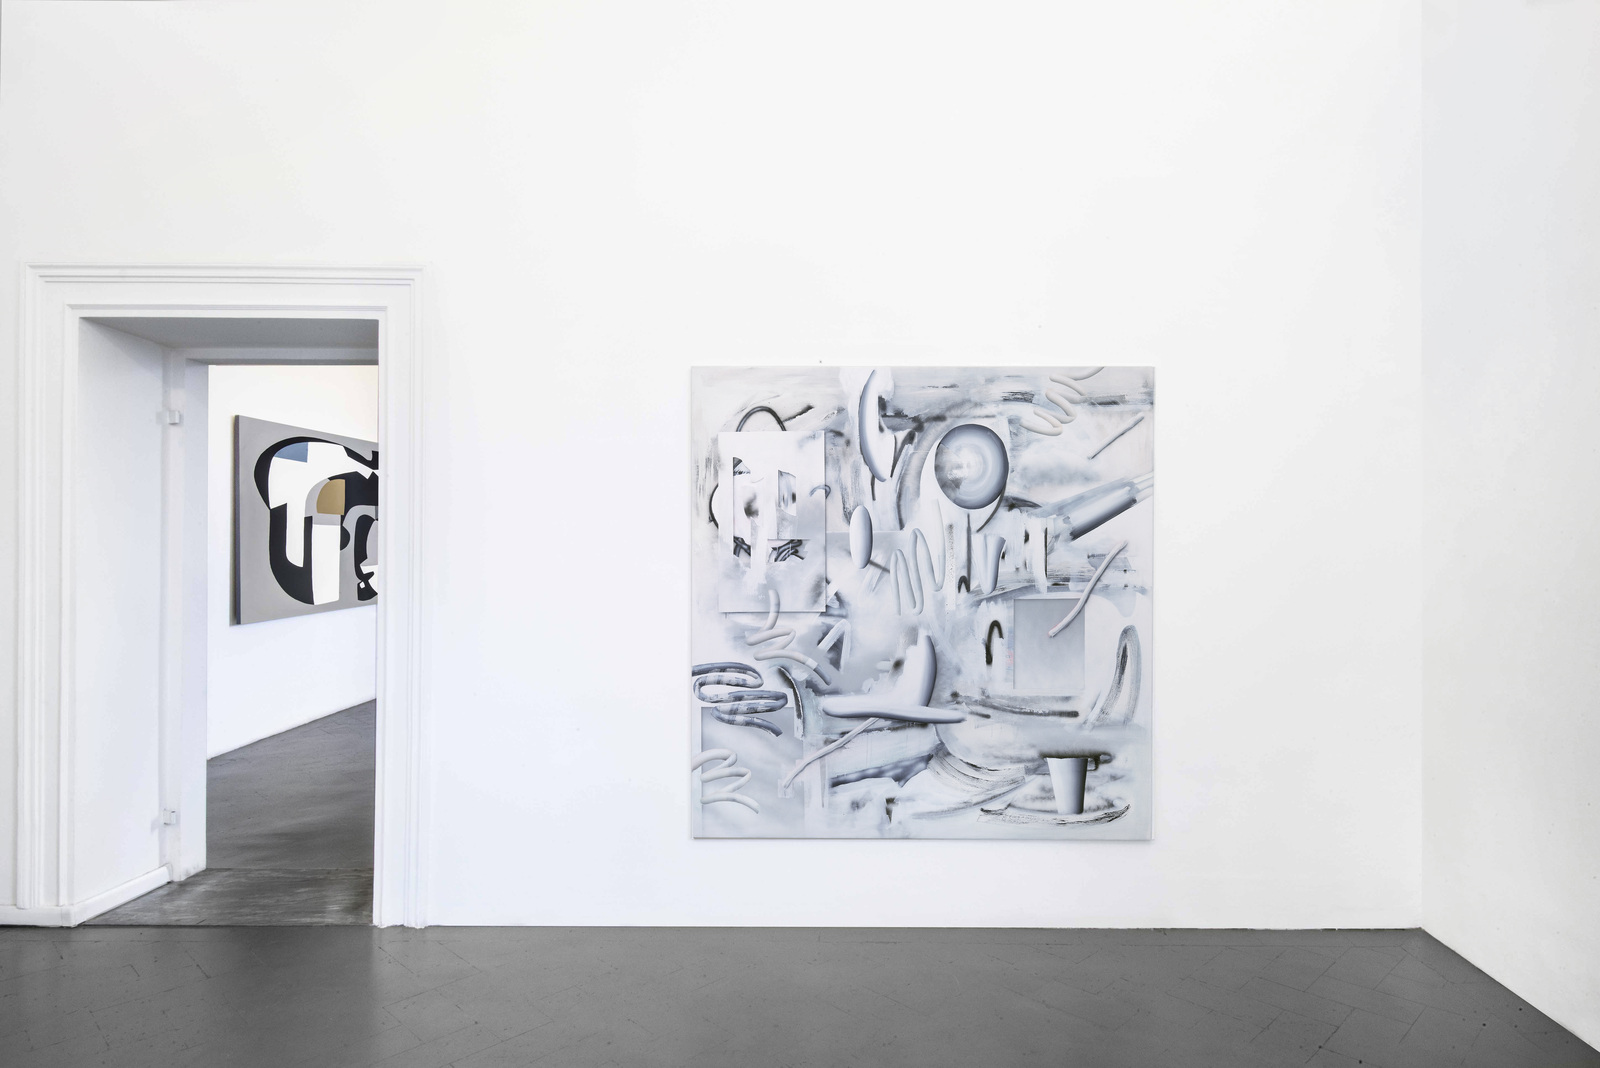 4.Installation view. Hayal Pozanti, Michael Debatty. Courtesy of eduardo secci Contemporary